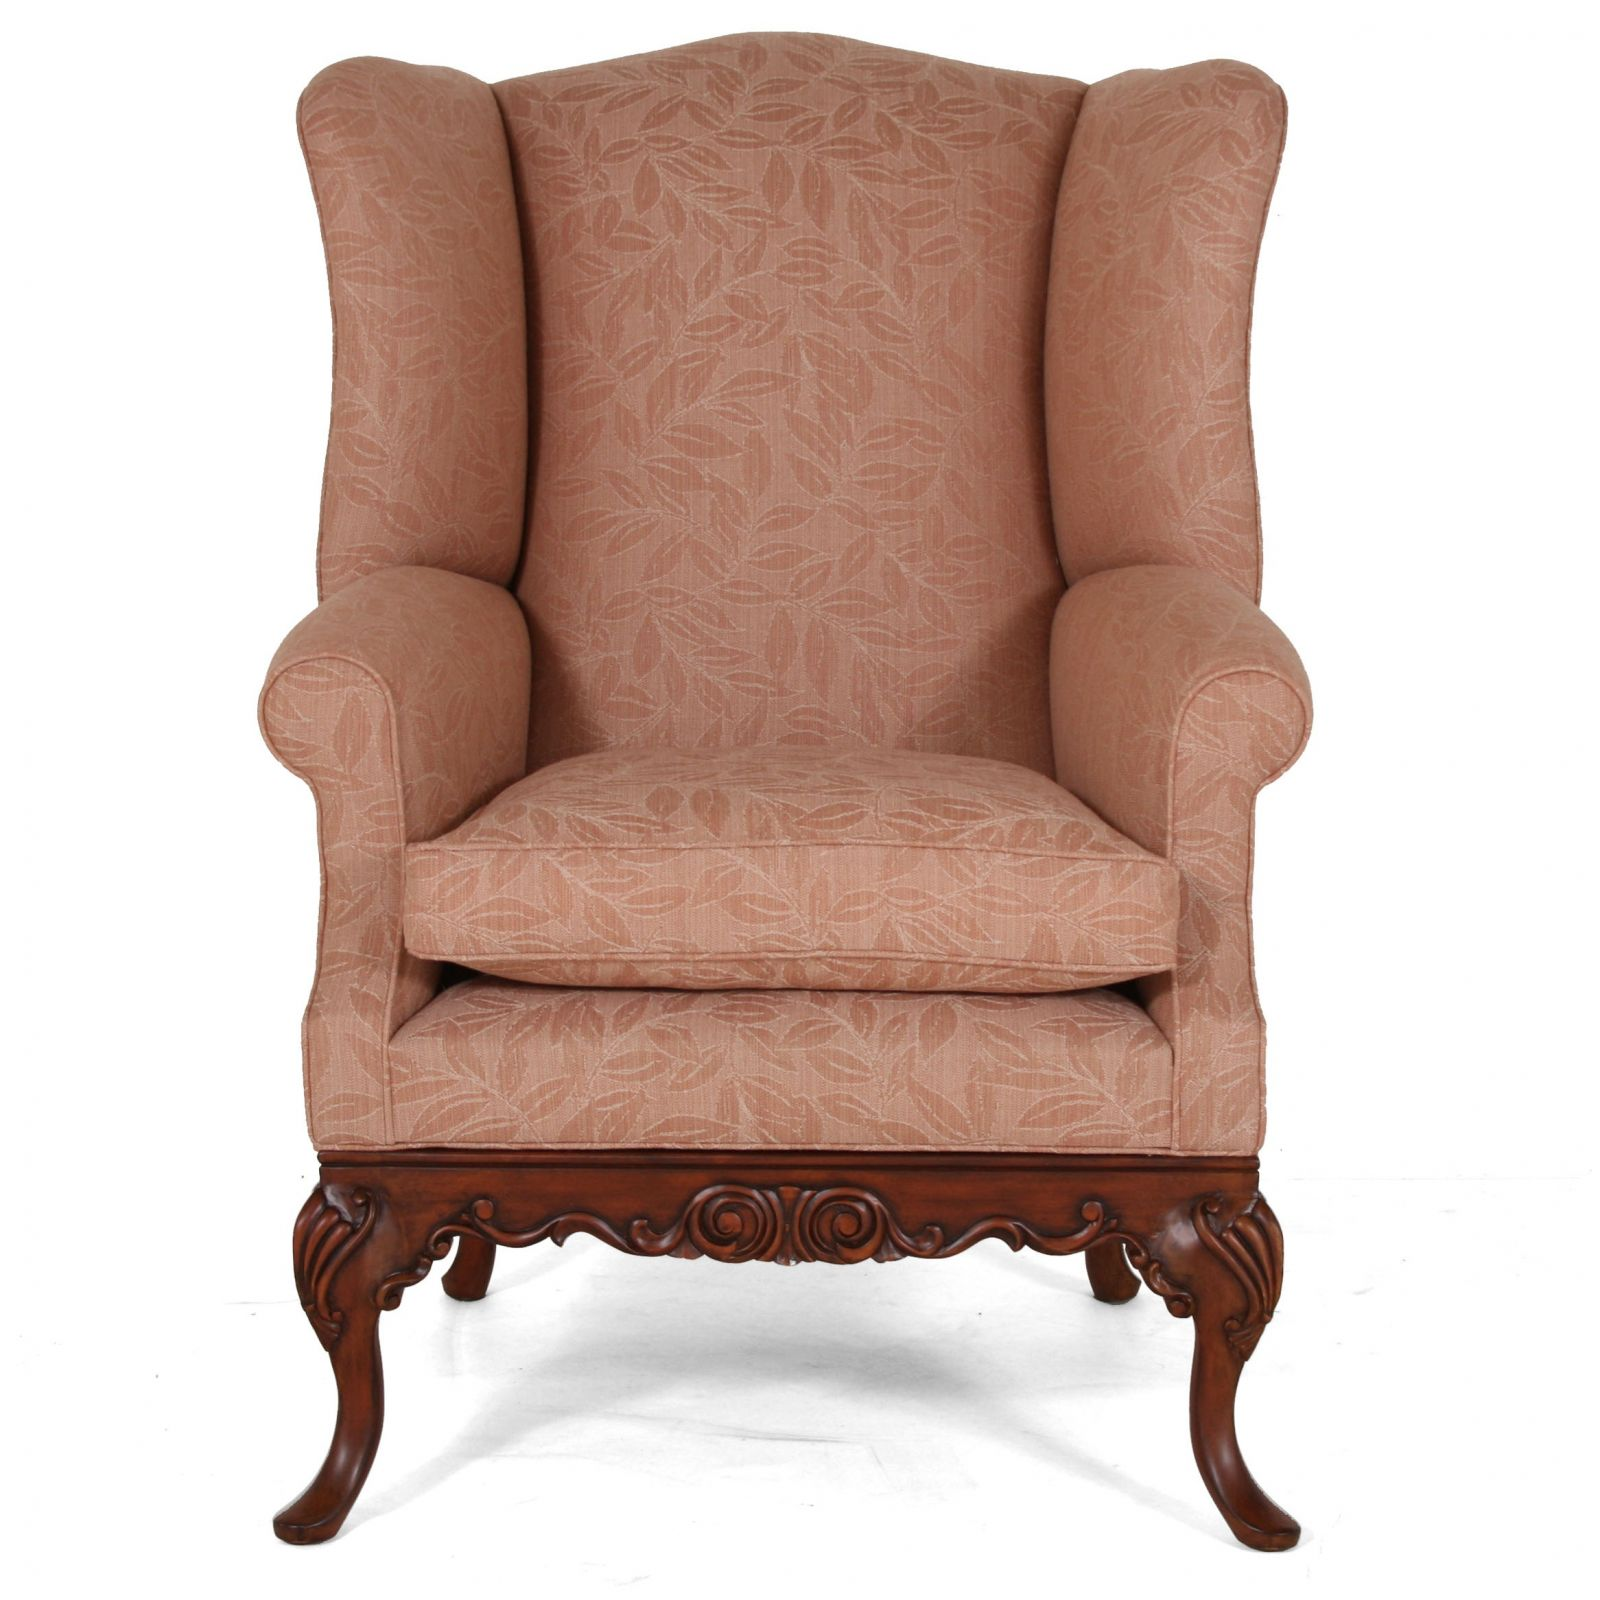 Sonning wing chair in Scottish Wool - Leaf Tan